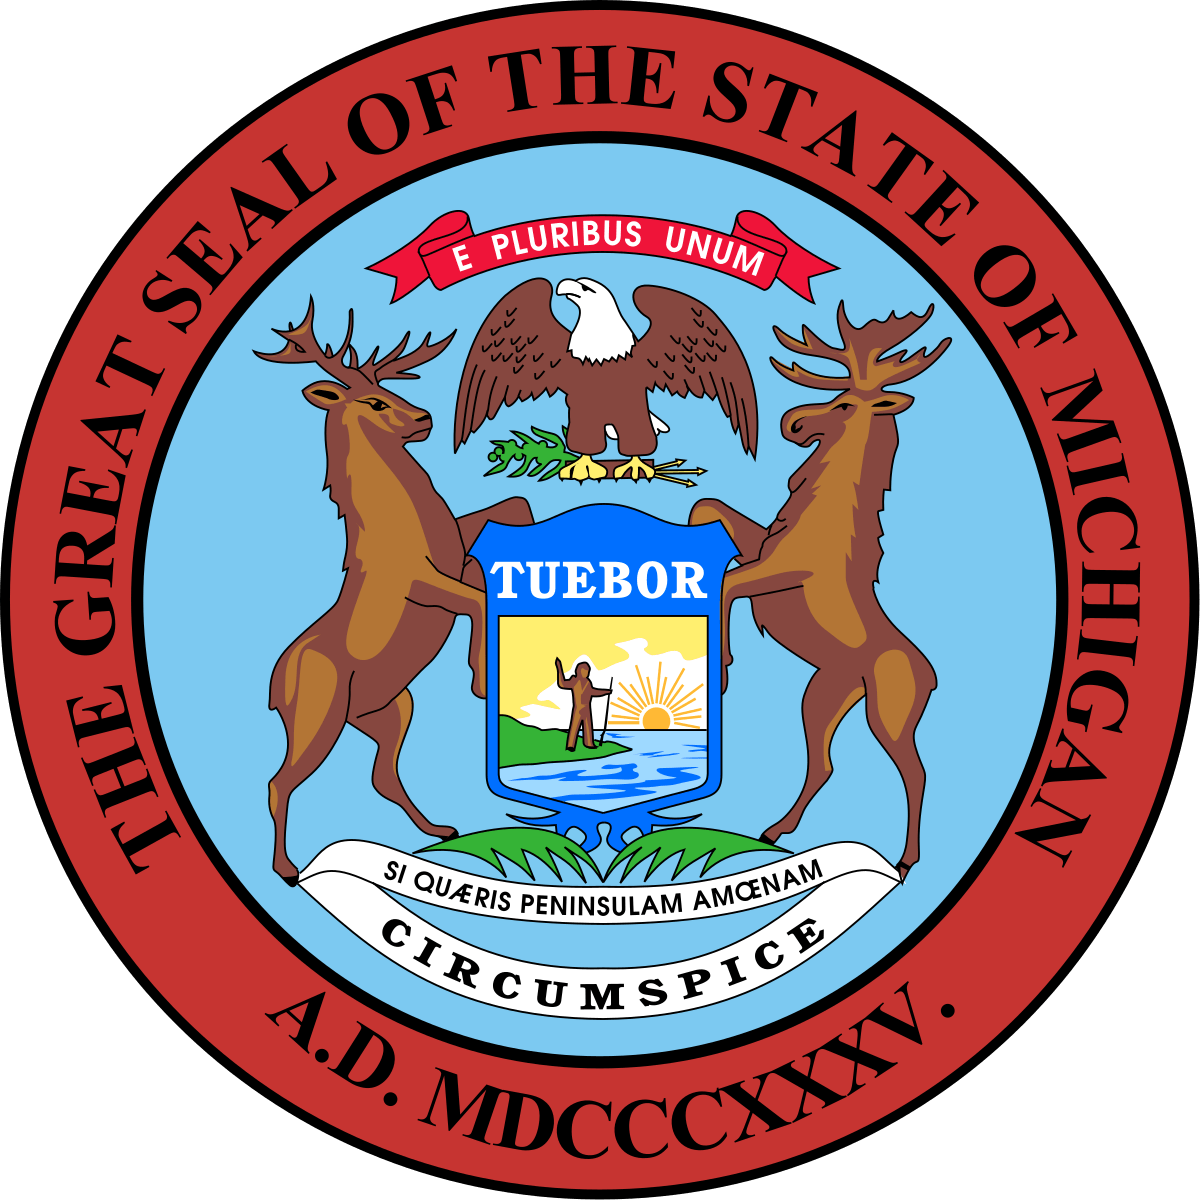 Management and Budget Director, Department of Technology, State of Michigan Logo